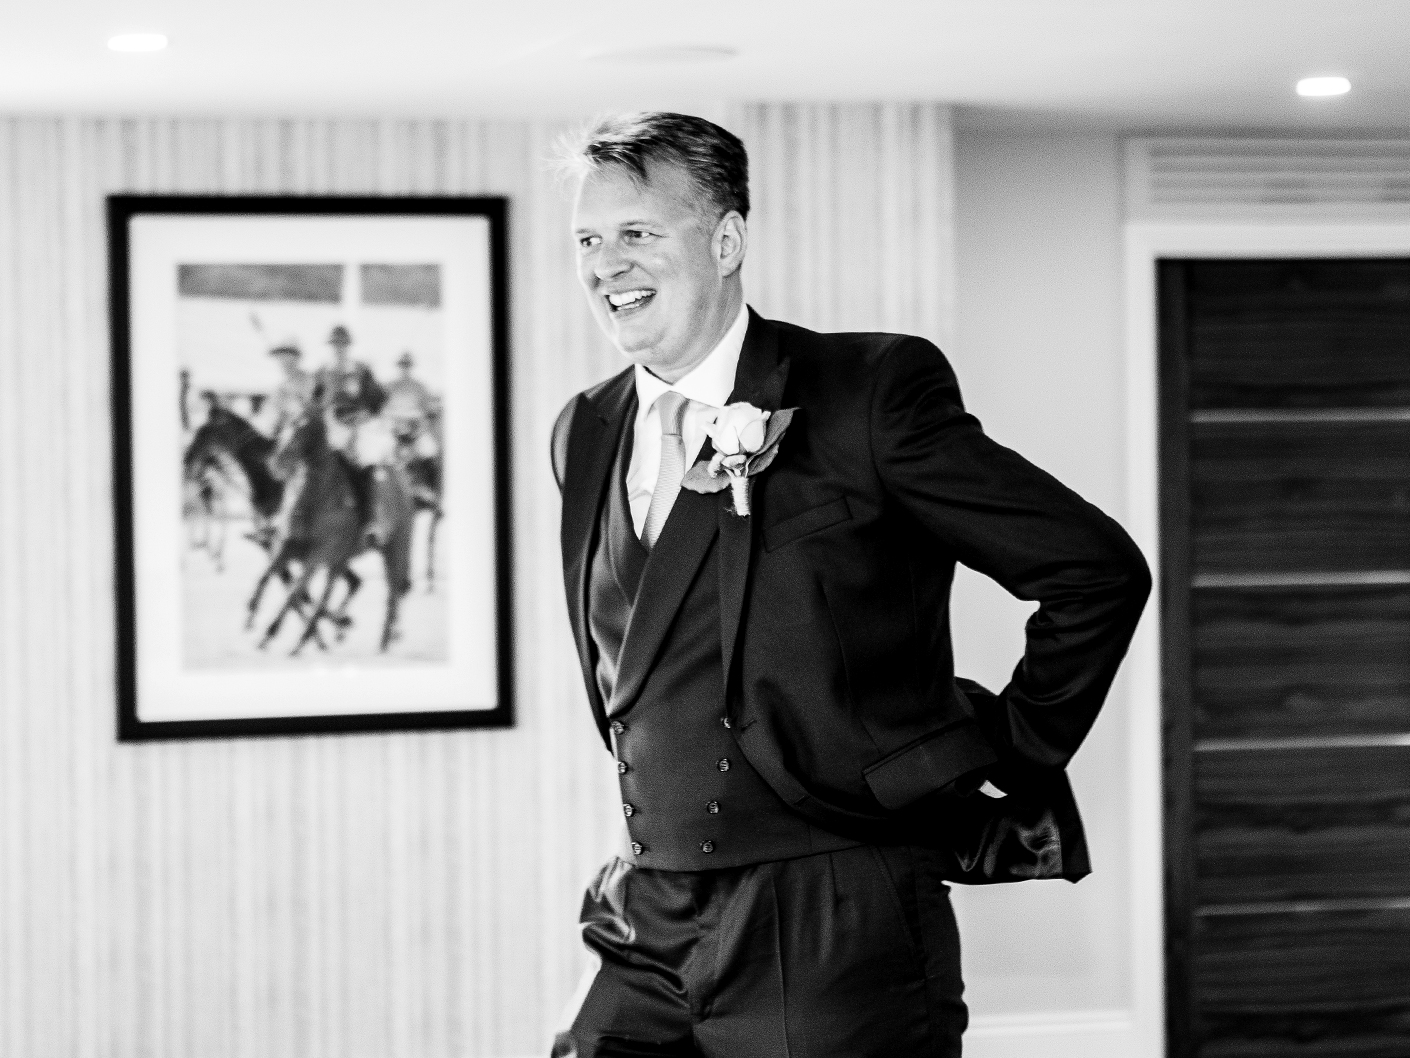 wedding-photography-of-the-groom-before-the-ceremony-at-merrydale-manor-knutsford-cheshire